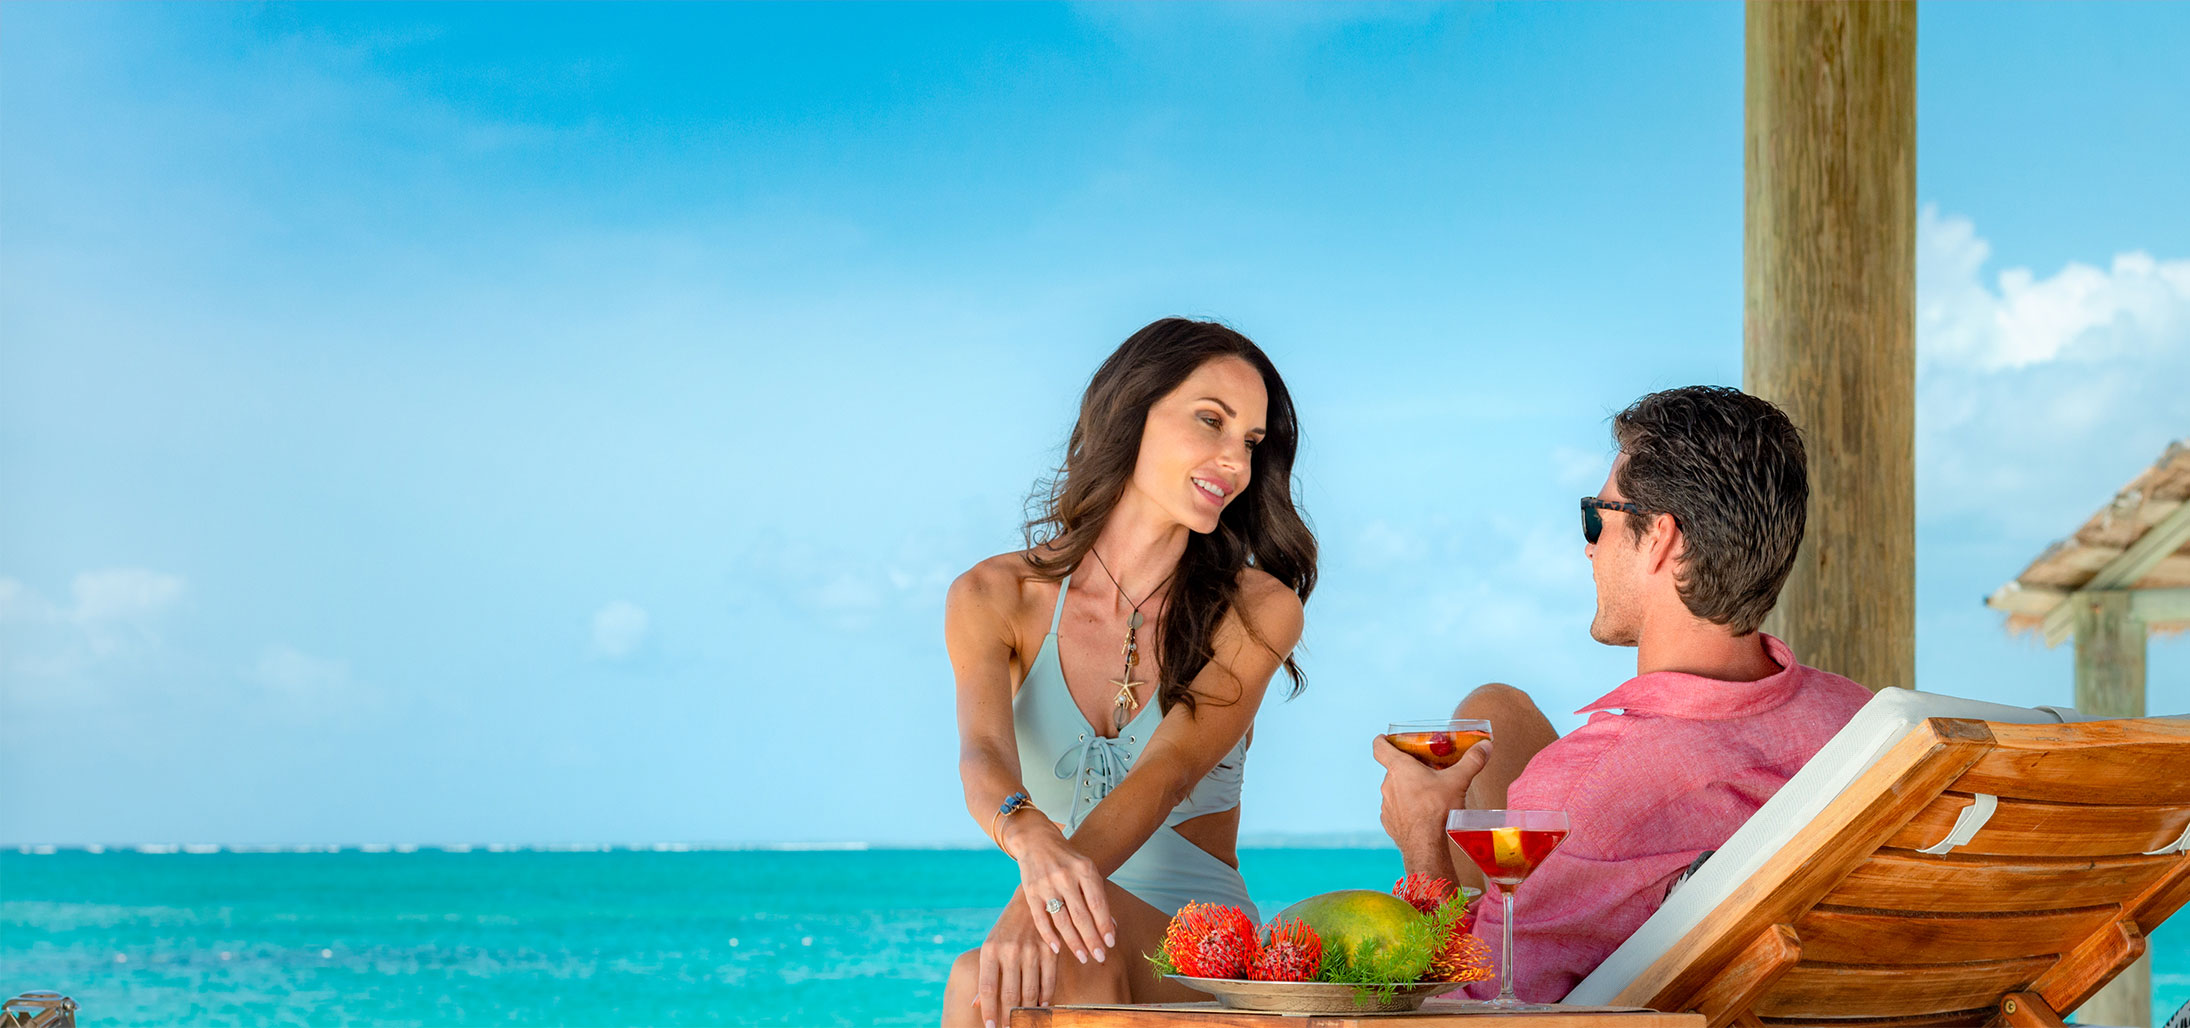 Opinion floridas erotic adult only travel apologise, but